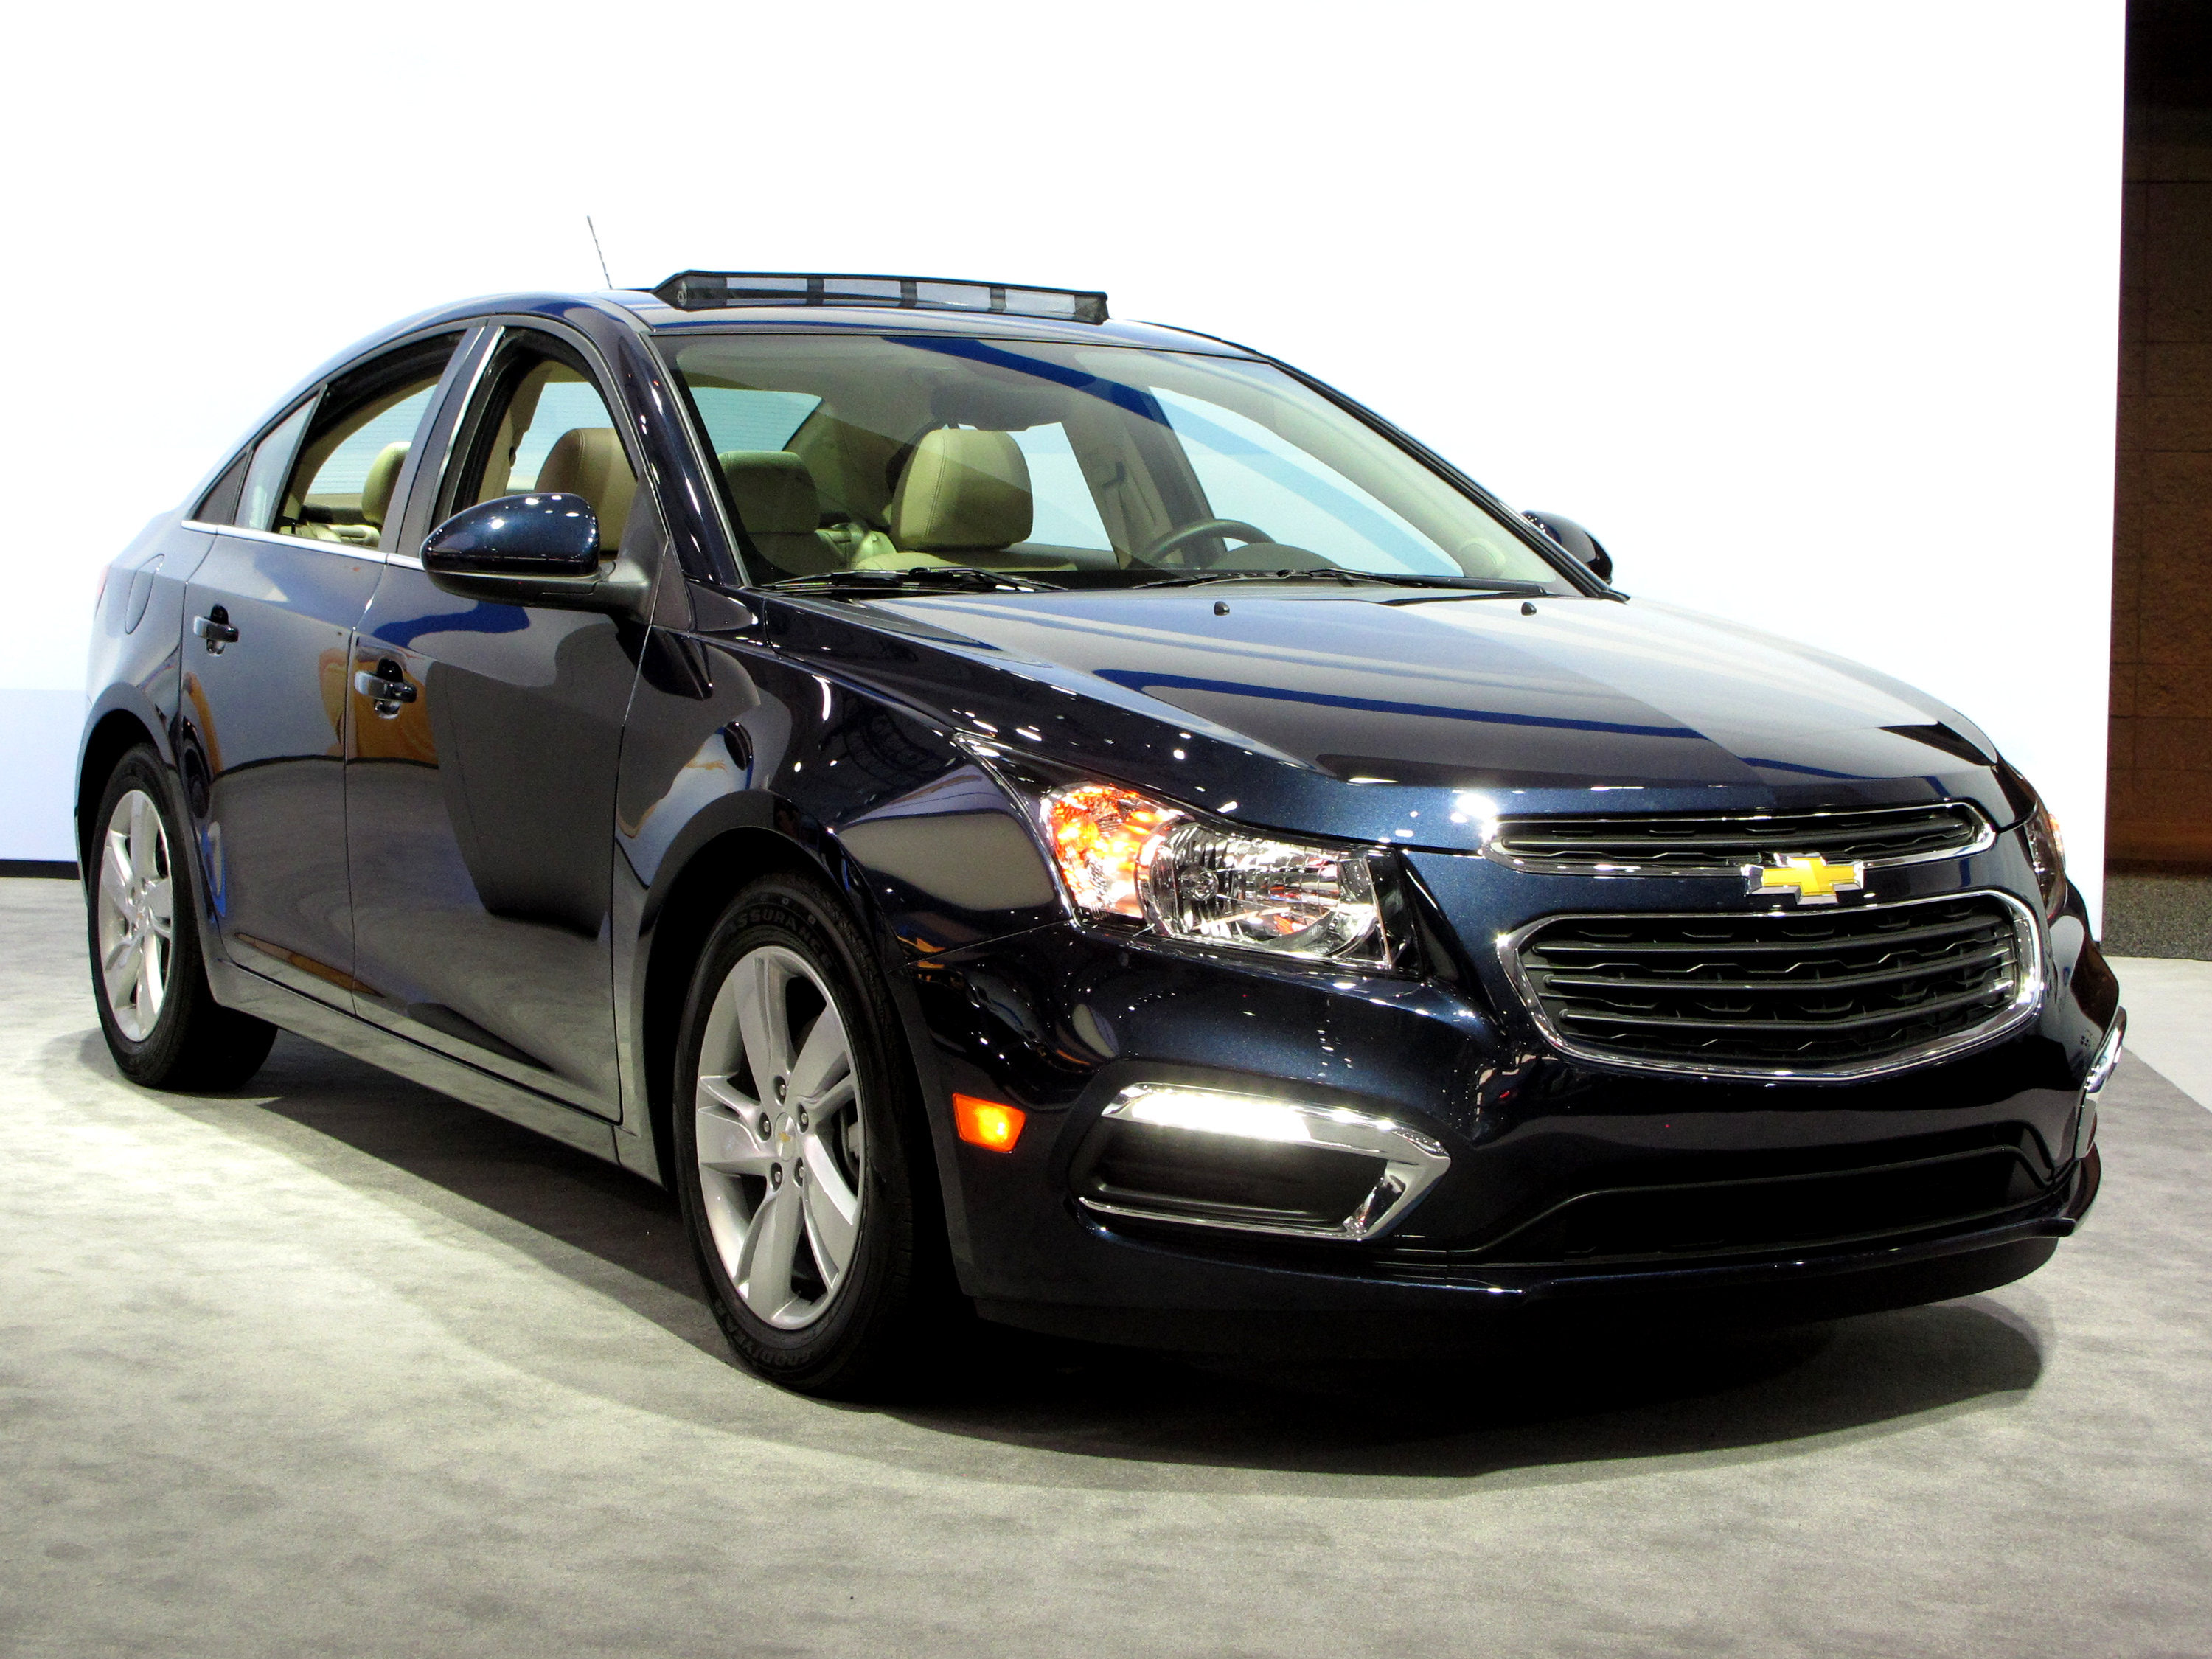 2015 chevrolet cruze reviews photos video and price hiclasscar. Black Bedroom Furniture Sets. Home Design Ideas